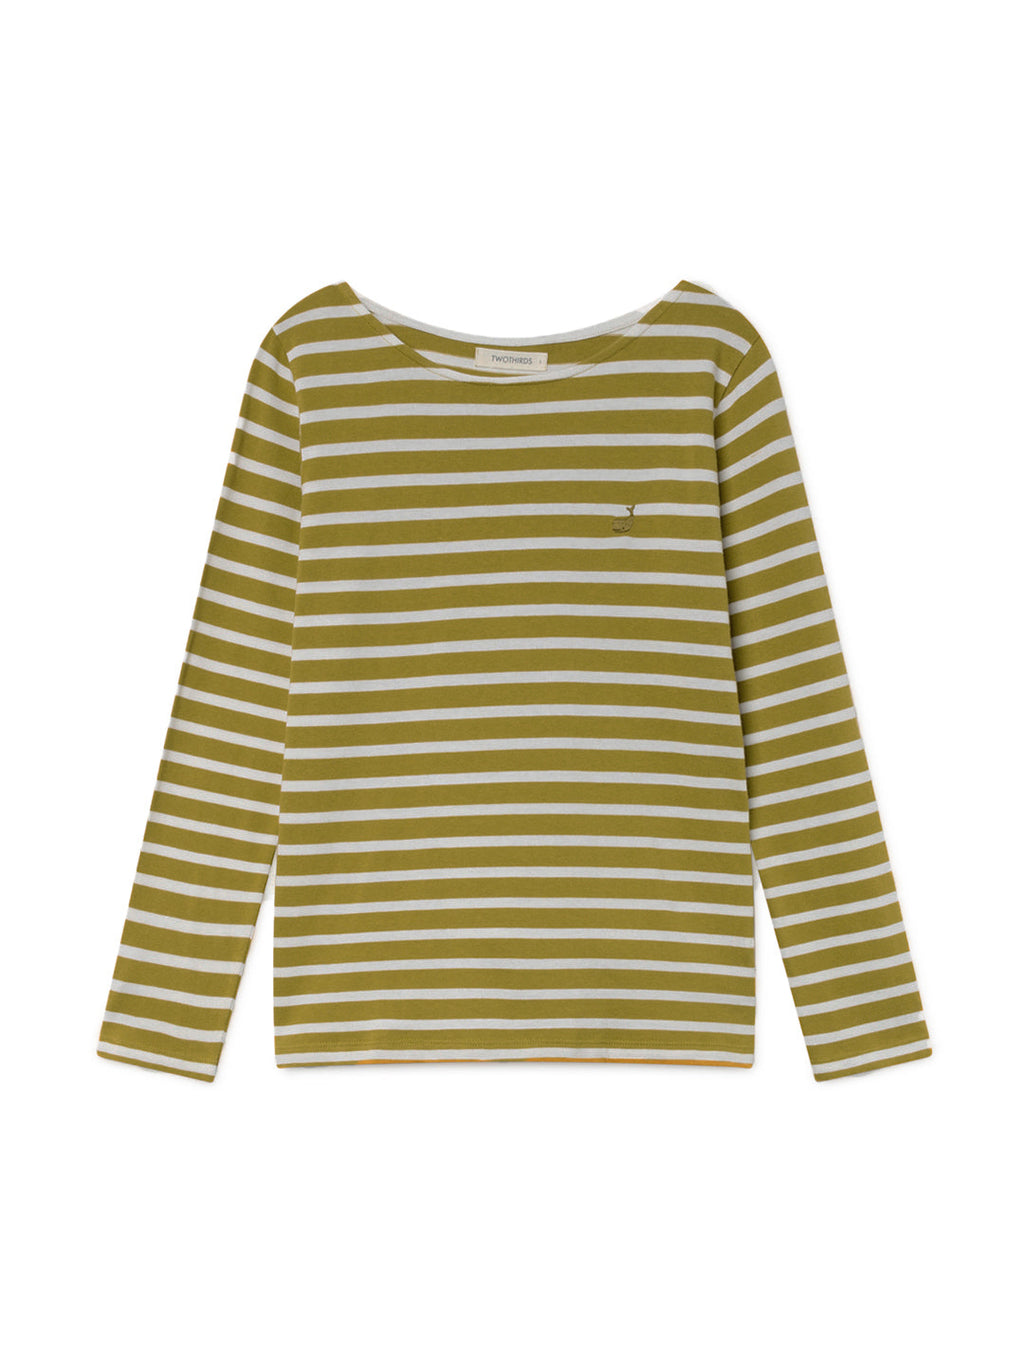 TWOTHIRDS Womens Tee: Martinica - Mustard front